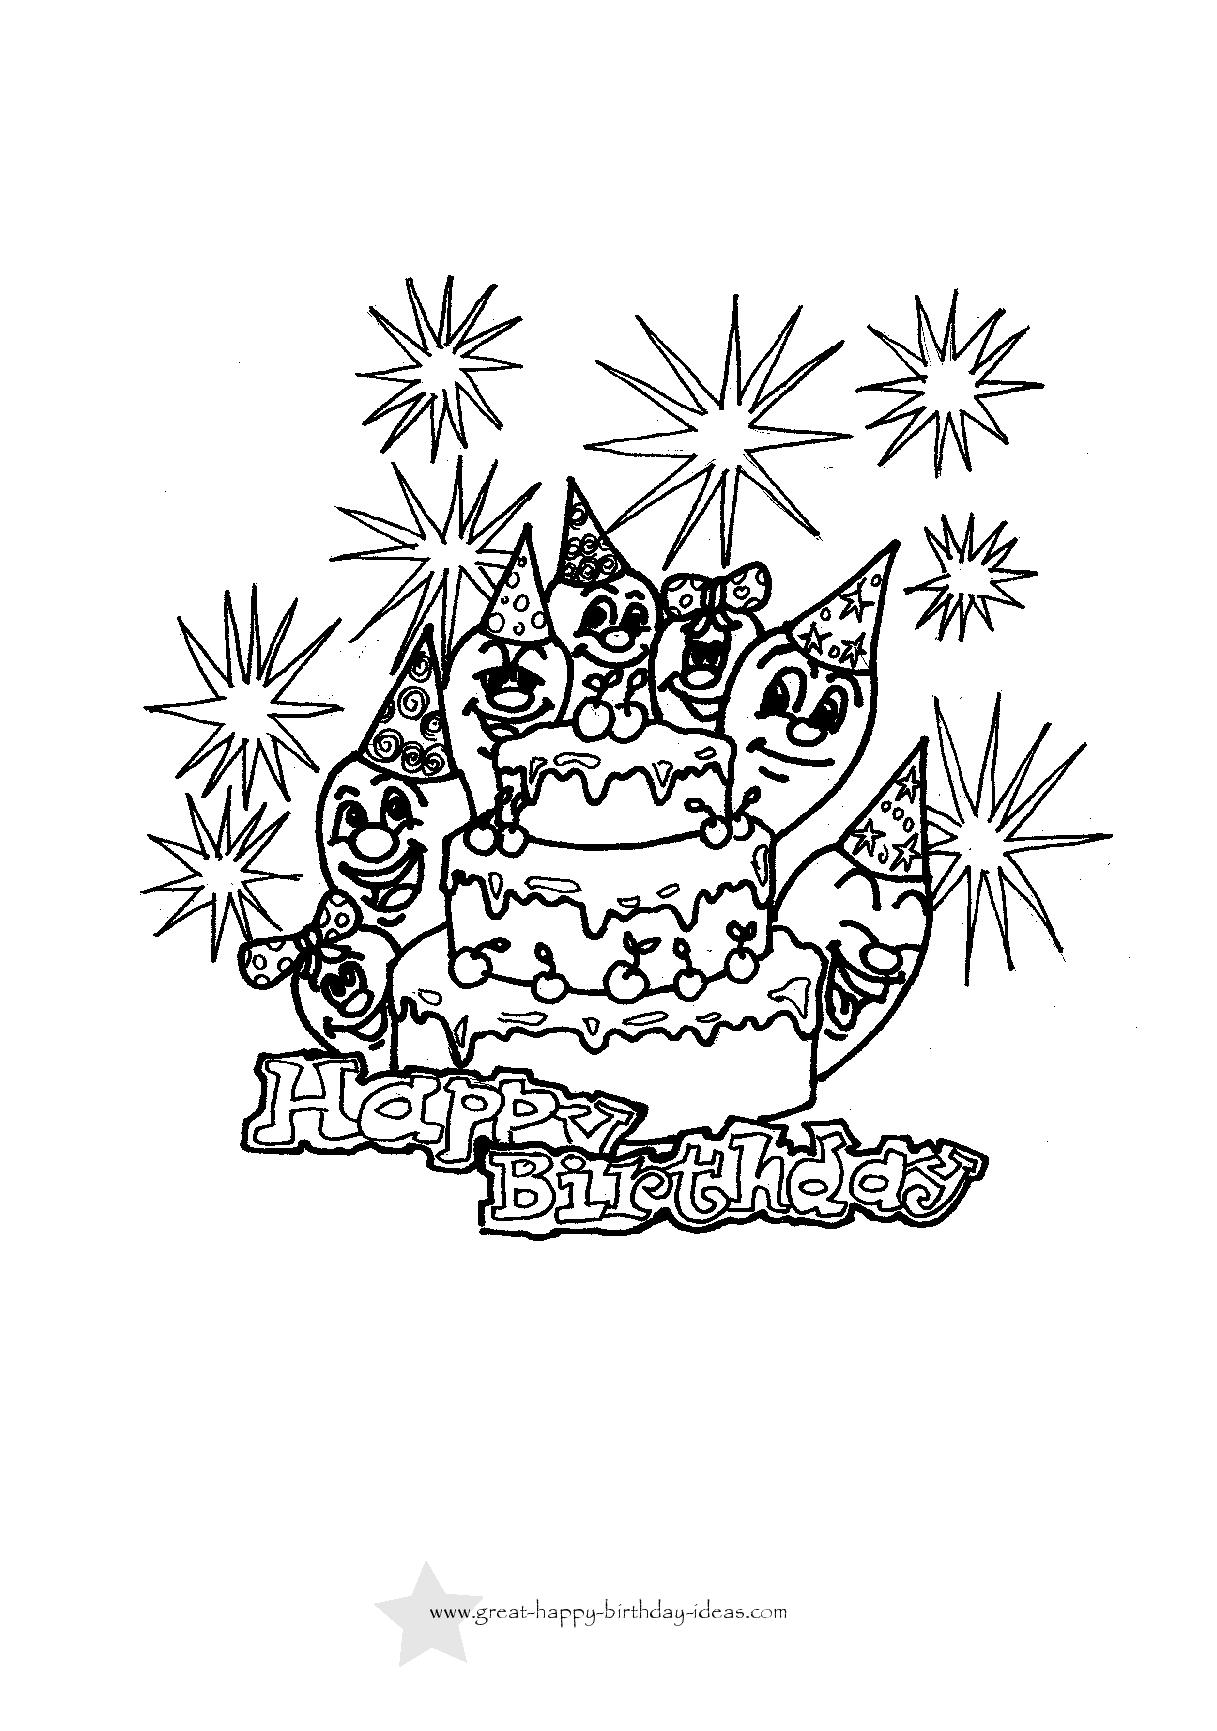 Printable Birthday Coloring Pages – Birthday Coloring Cards